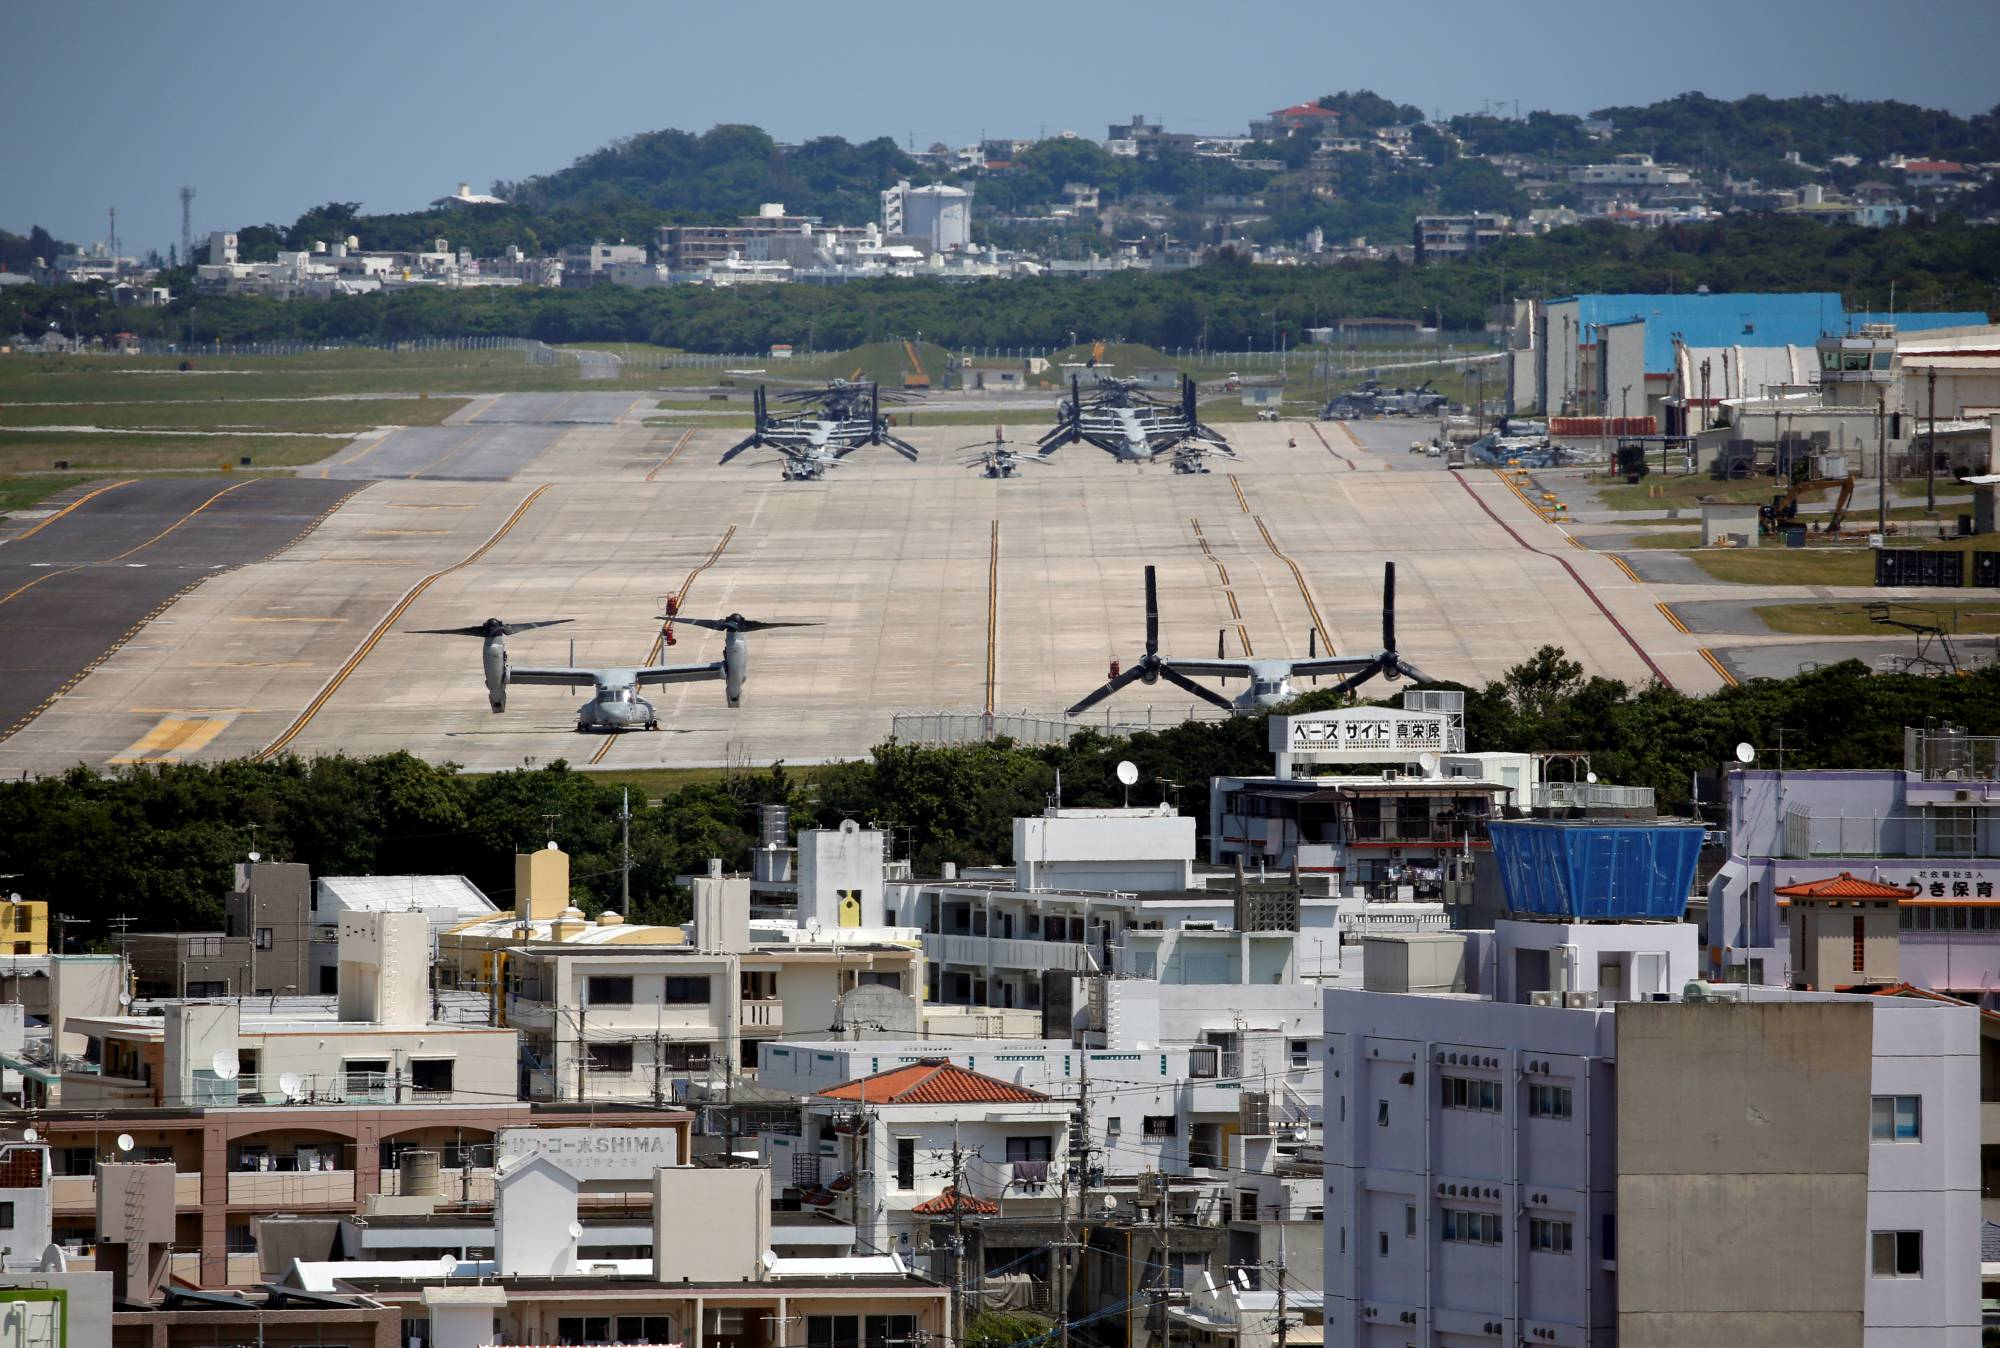 MV-22 tilt-rotor Ospreys are seen at the U.S. Marine Corps' Air Station Futenma in Ginowan, Okinawa Prefecture, in March 2018. | REUTERS